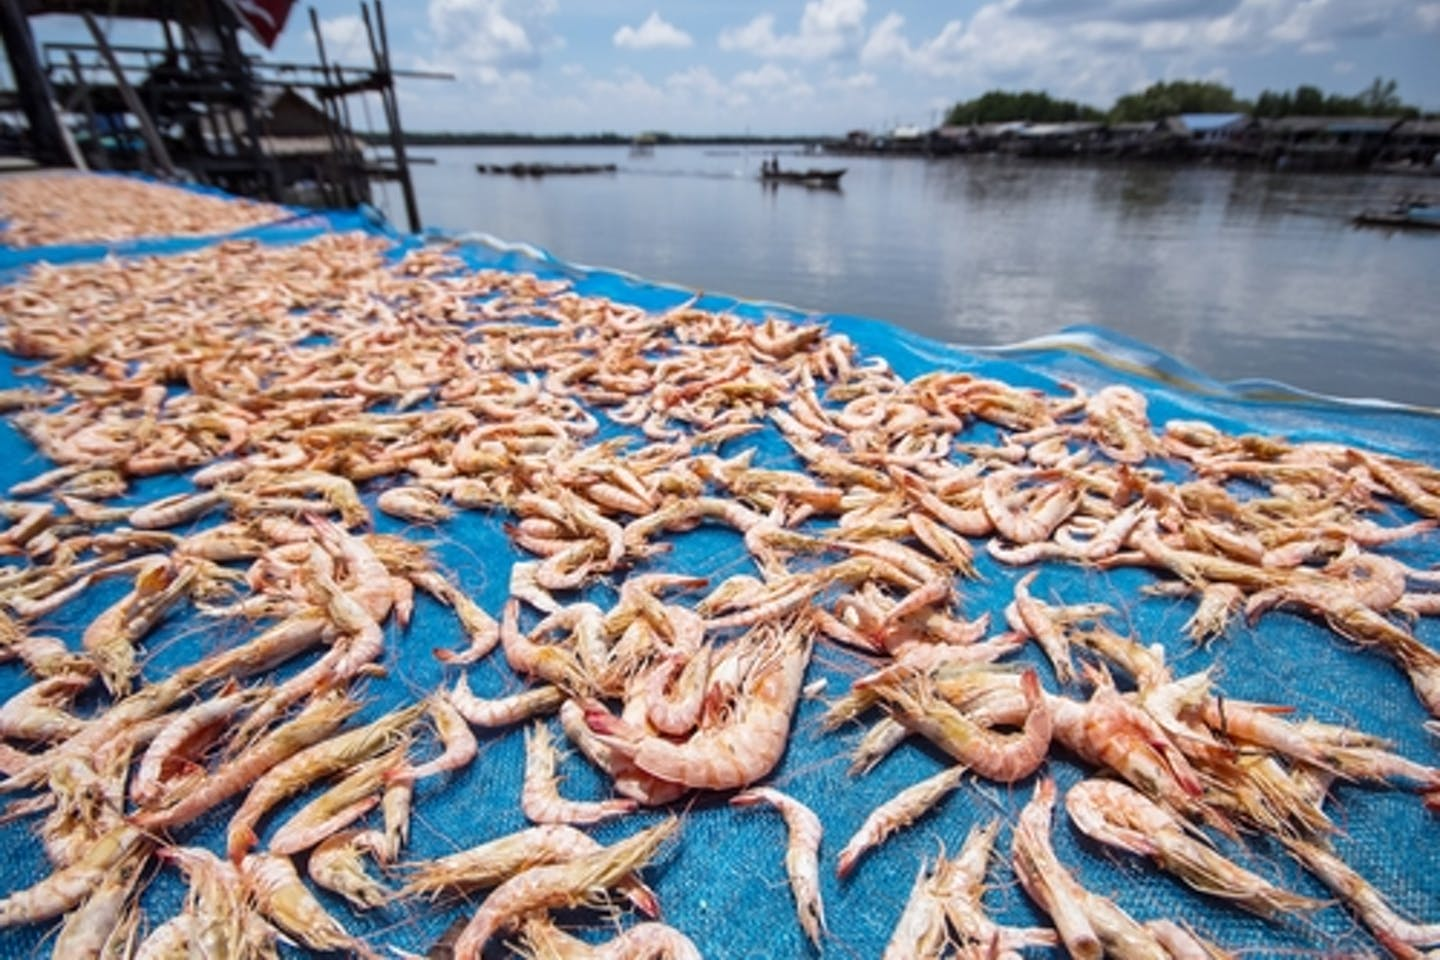 Shrimp farming industry